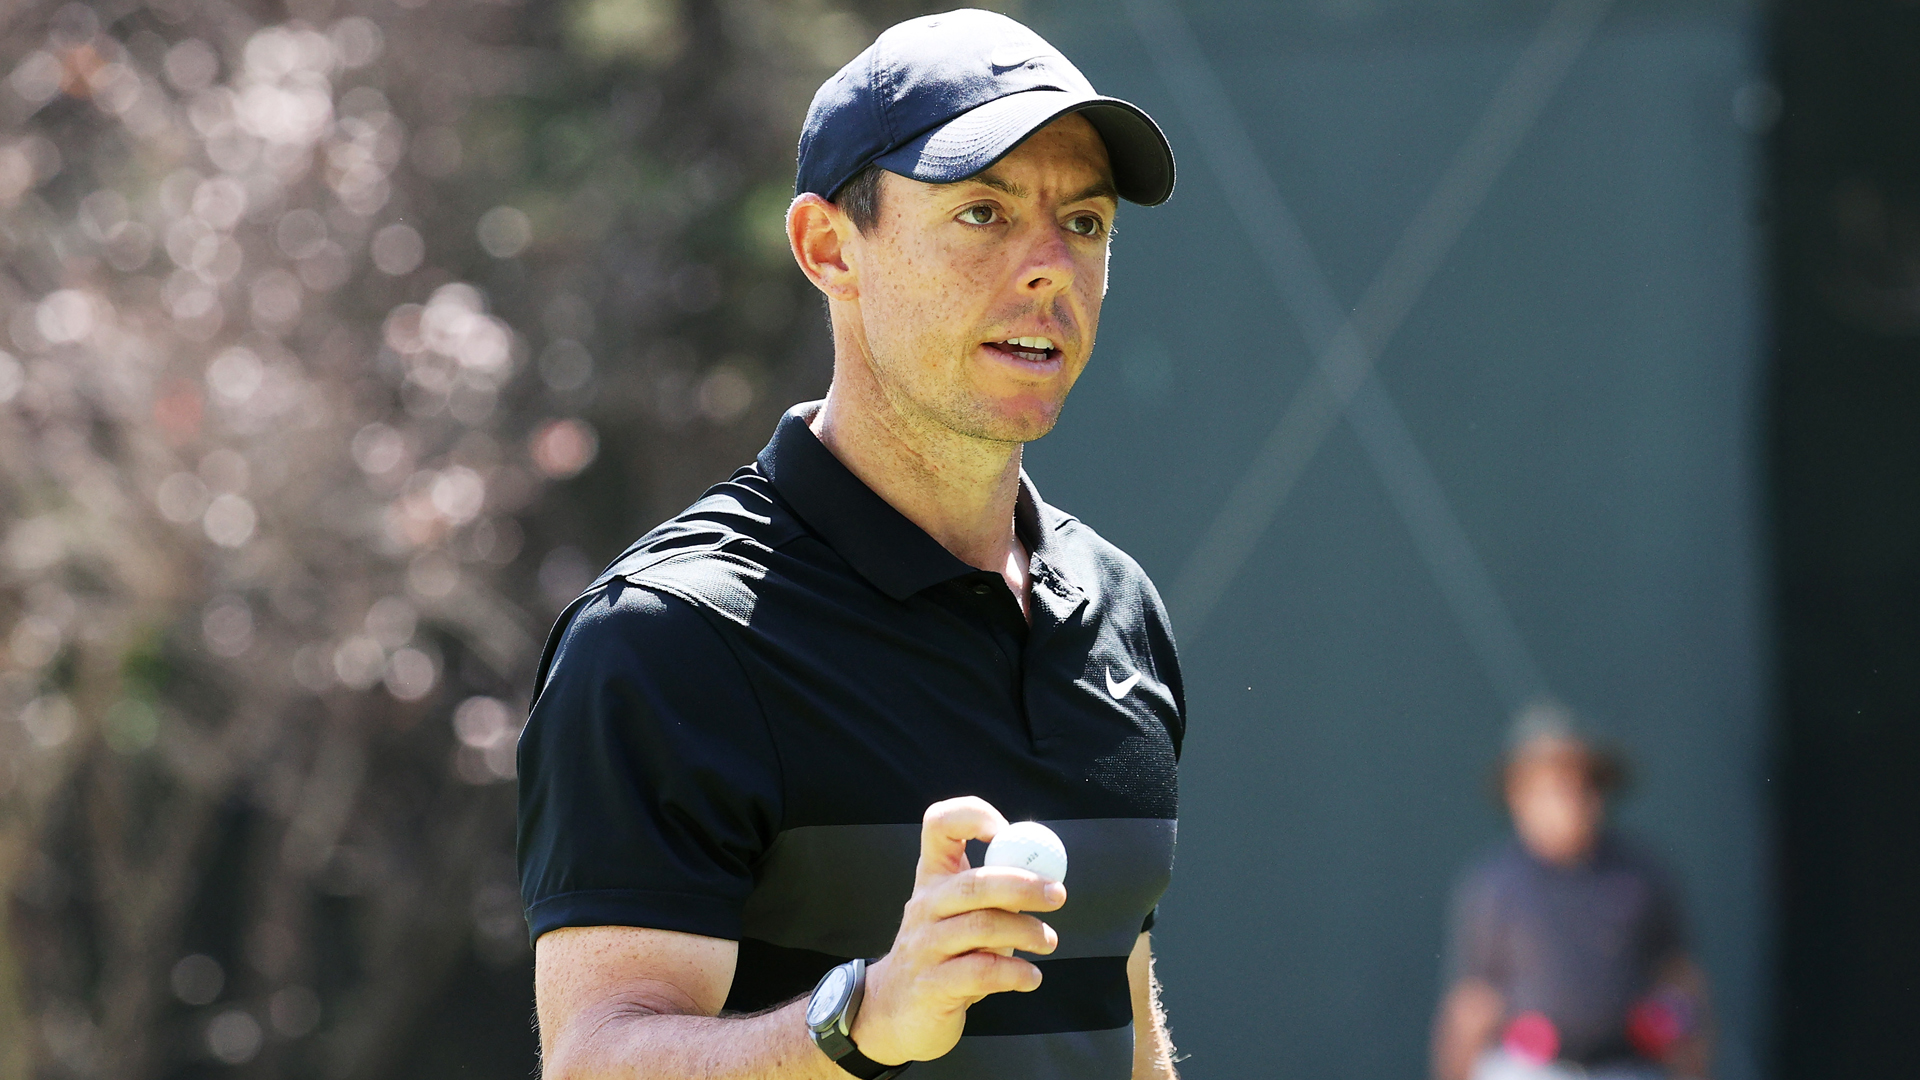 McIlroy grabs two-stroke lead in Mexico